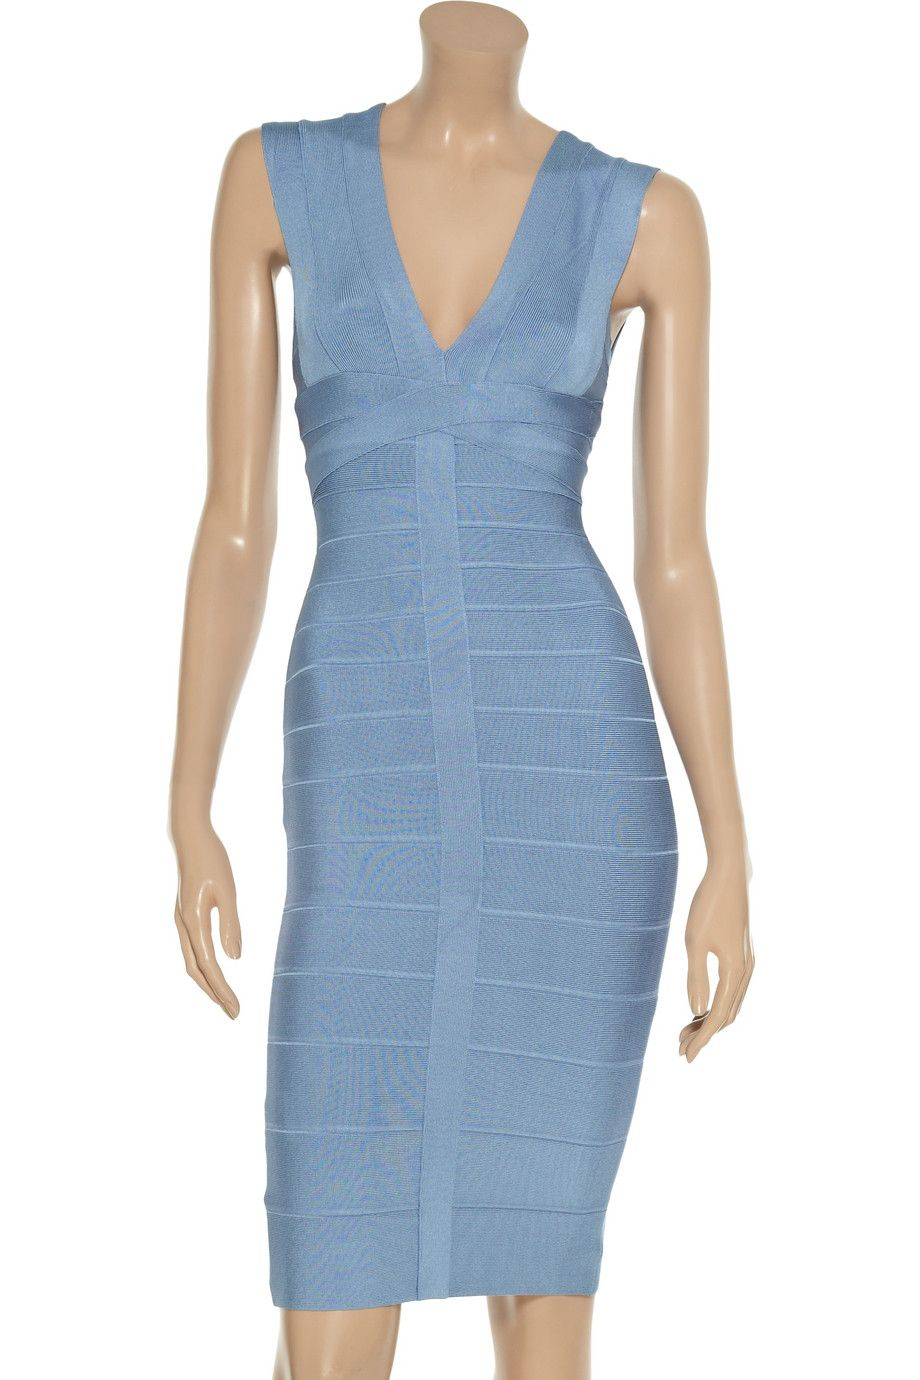 ab9cf8907496c Discount designer clothes for women sale. Hervé Léger V-neck bandage dress  - 50% Off Now at THE OUTNET